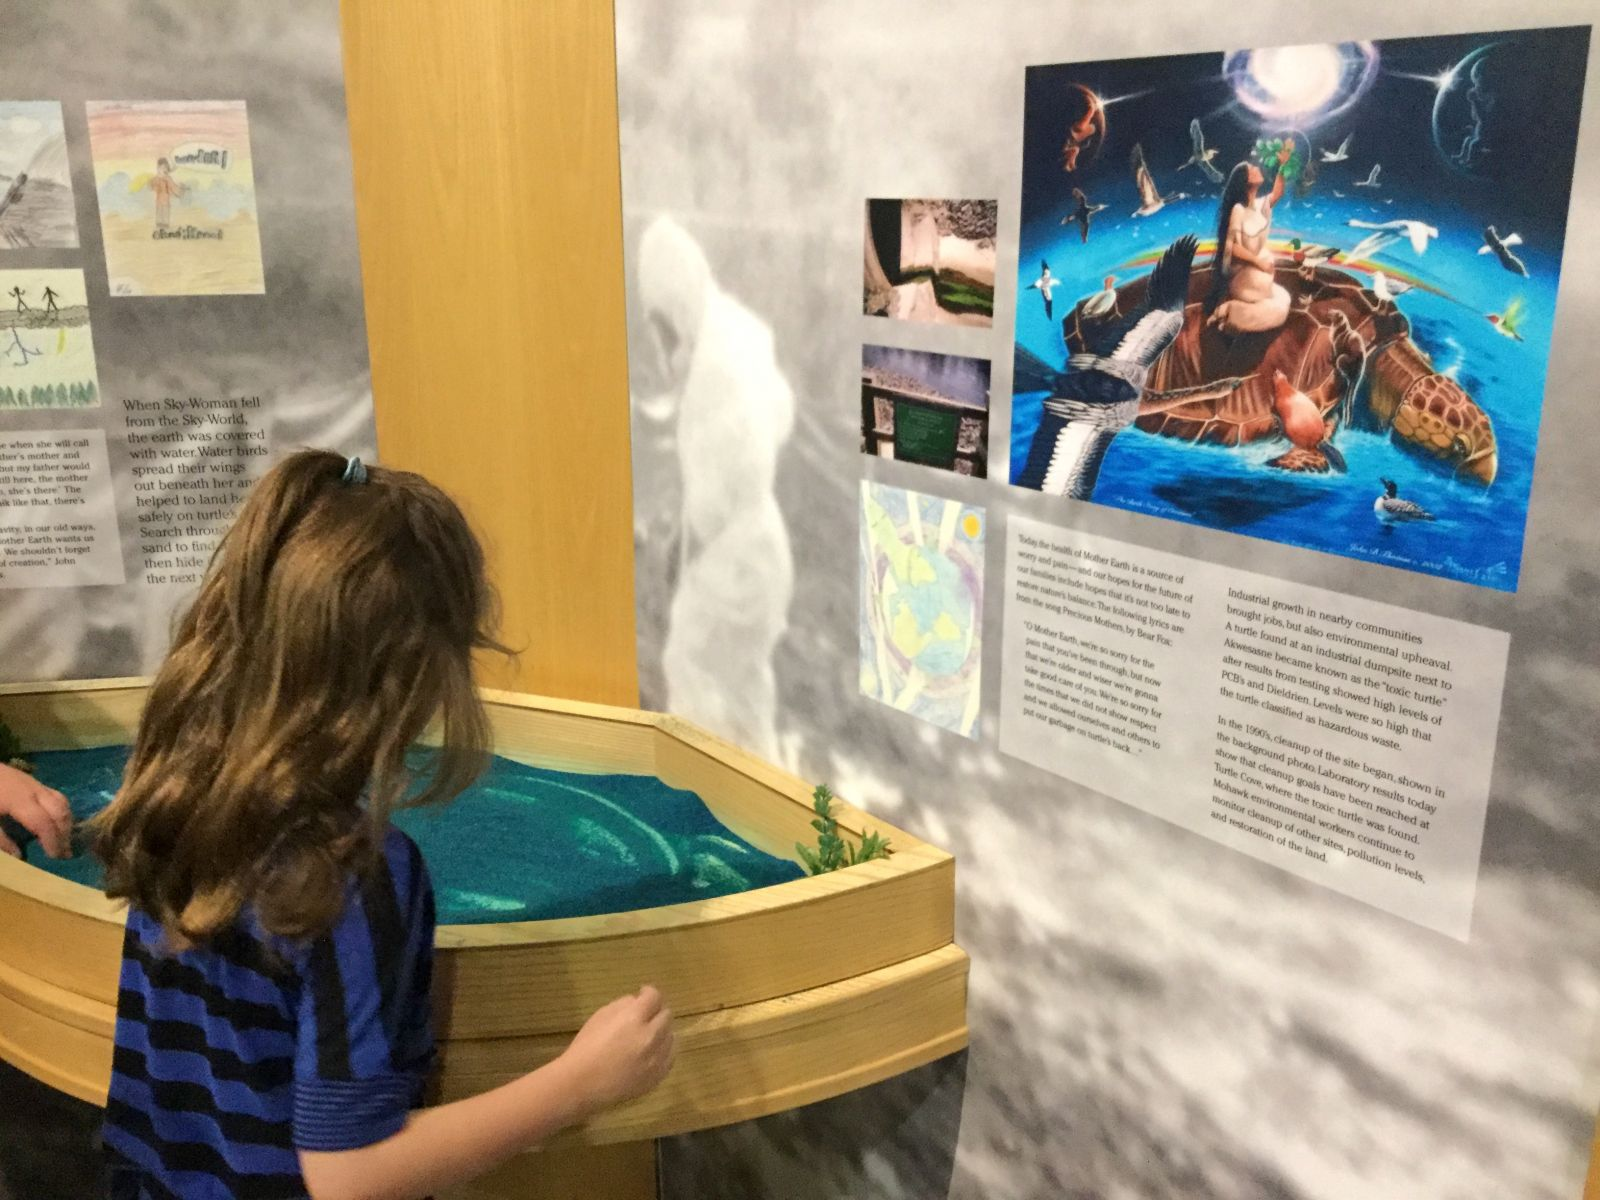 At this interactive wetlands table, visitors can craft their own ecosystem.